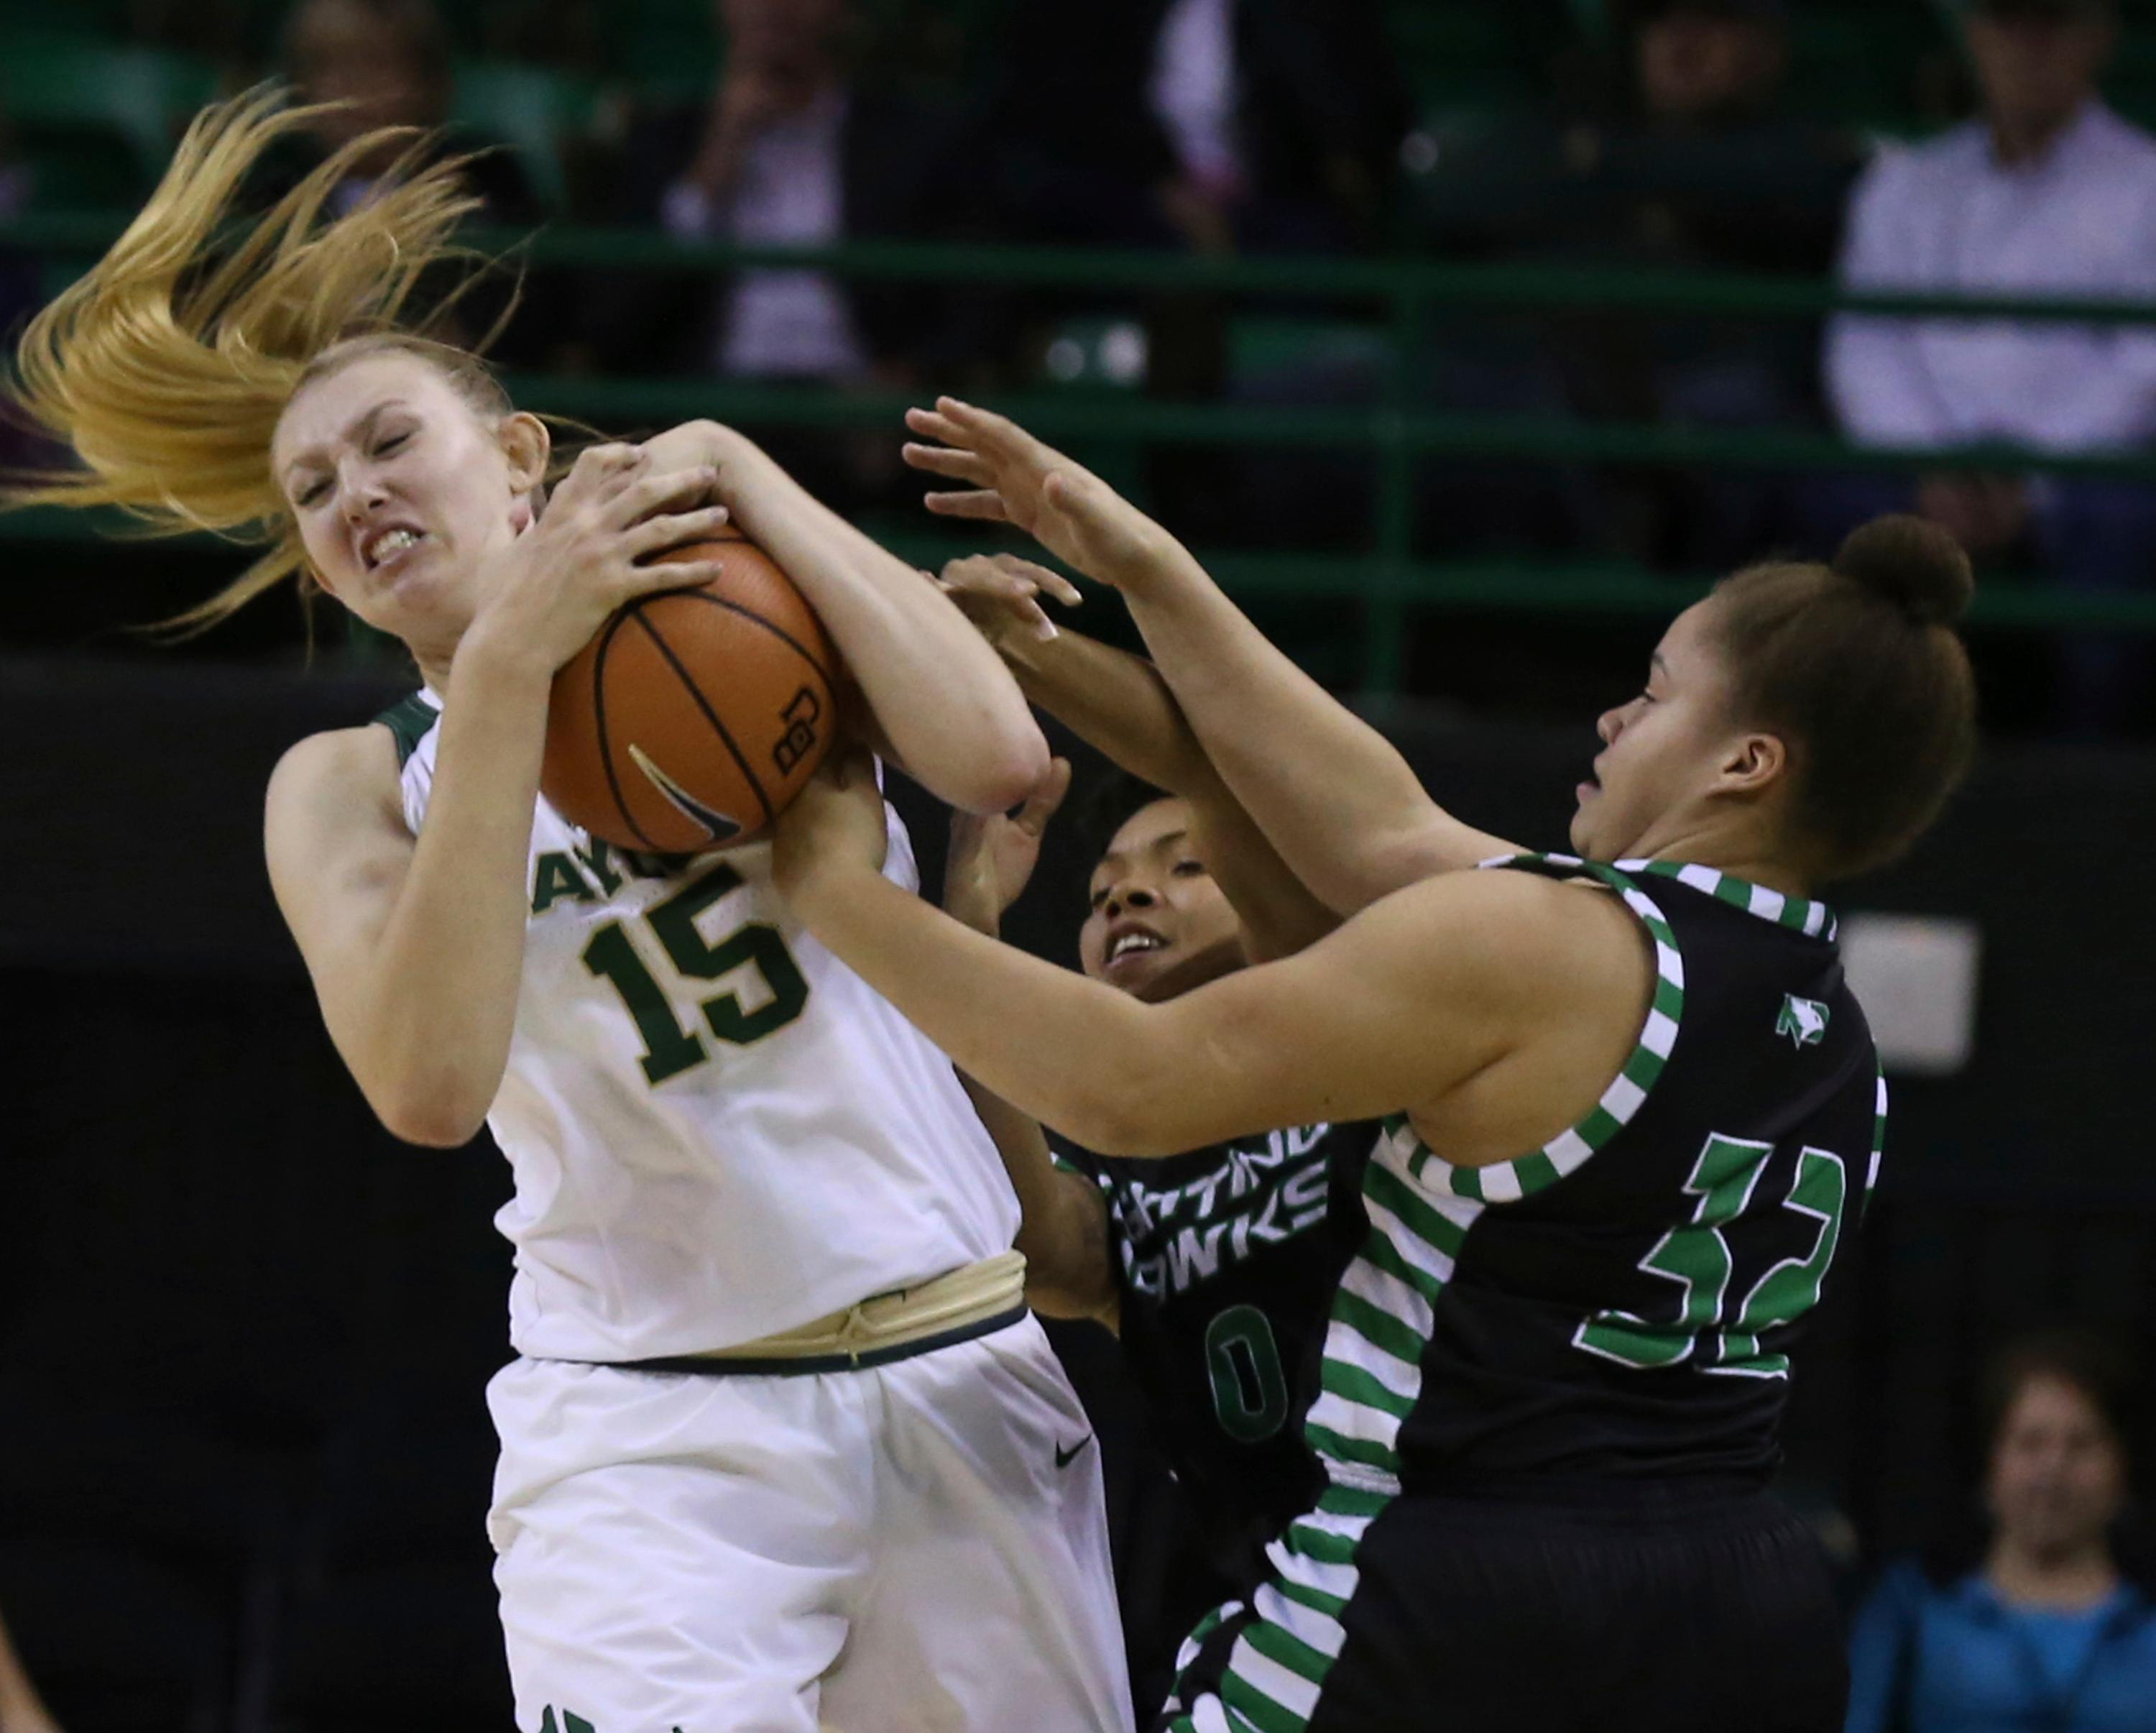 Baylor forward Lauren Cox, left, pulls down a loose ball over North Dakota Akealy Moton, right, during the first half of an NCAA college basketball game Tuesday, Dec. 5, 2017, in Waco, Texas. (Rod Aydelotte/Waco Tribune Herald, via AP)